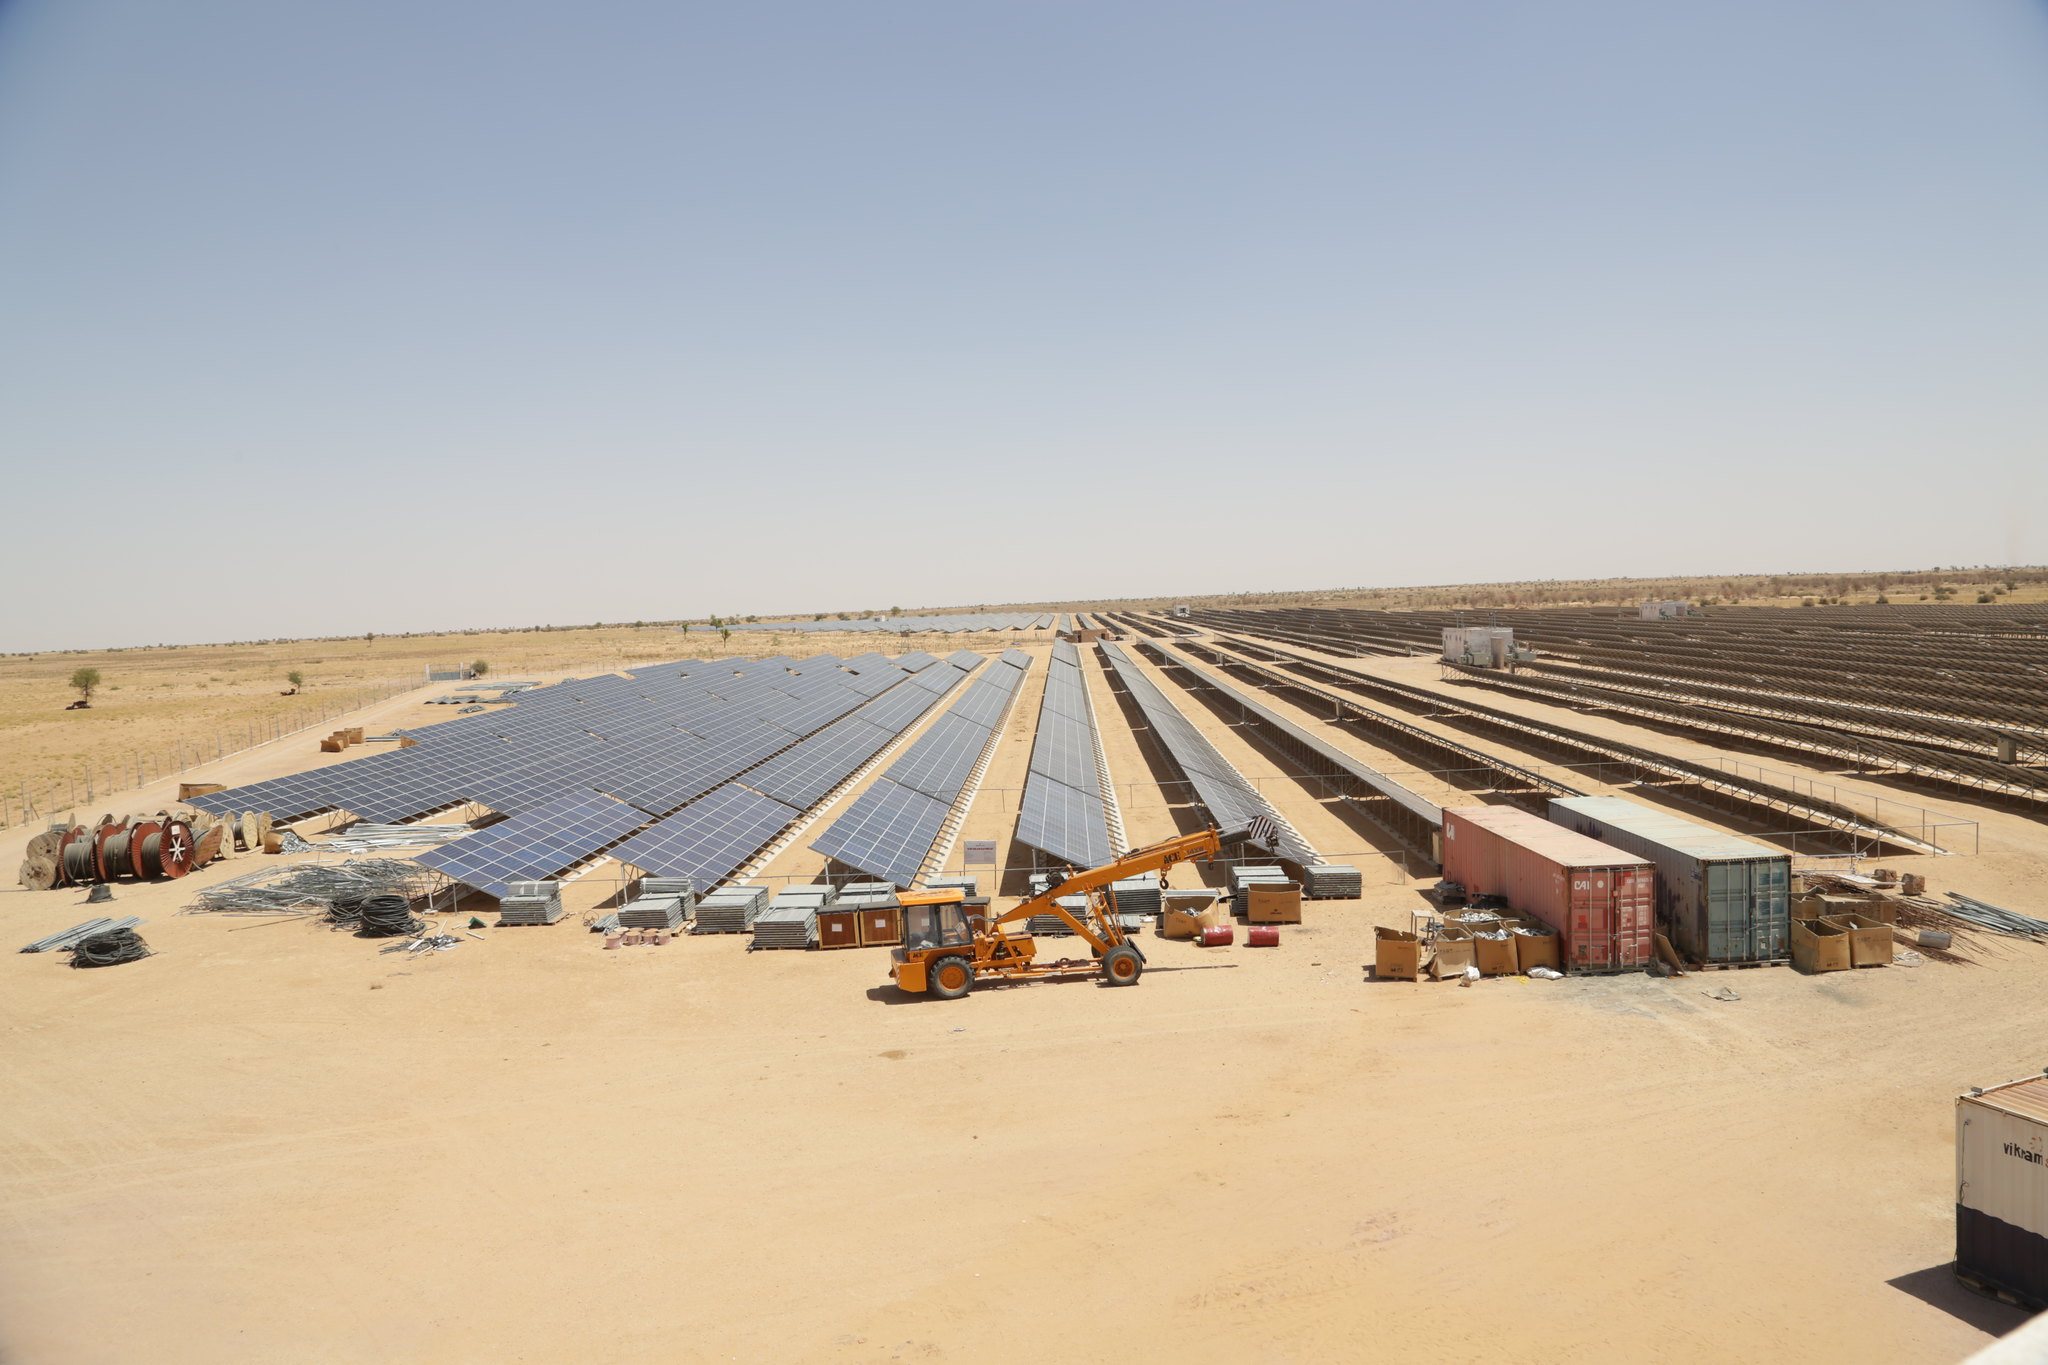 The government is pushing for large solar parks. Photo by Jitendra Parihar (Thomson Reuters Foundation)/Flickr.